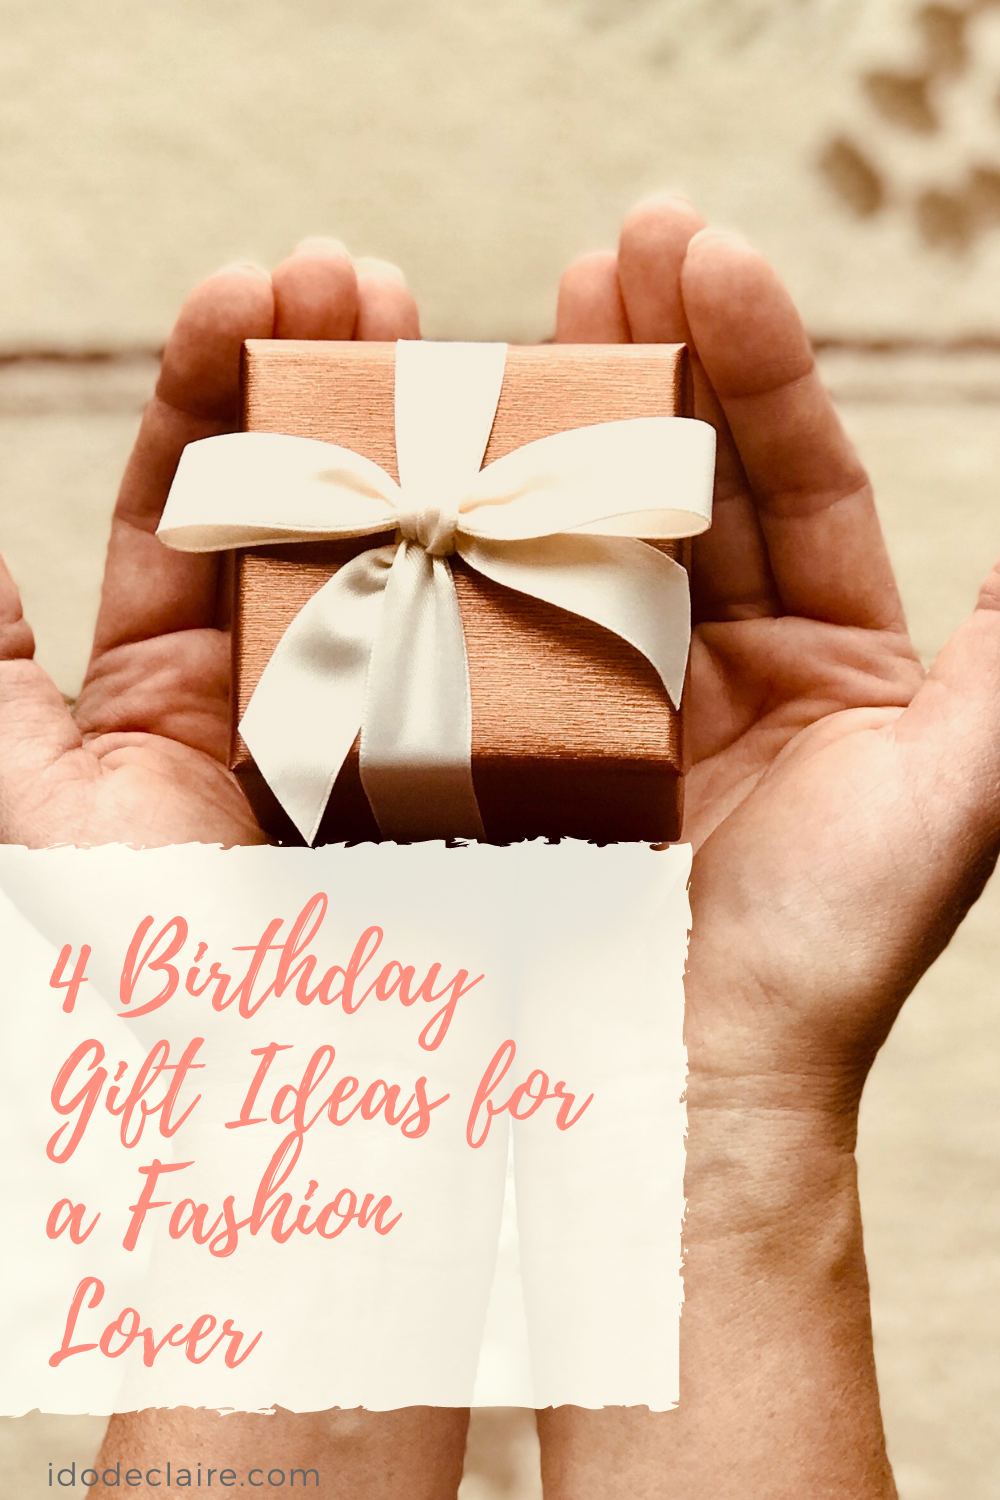 Birthday Gift Ideas for a Fashion Lover